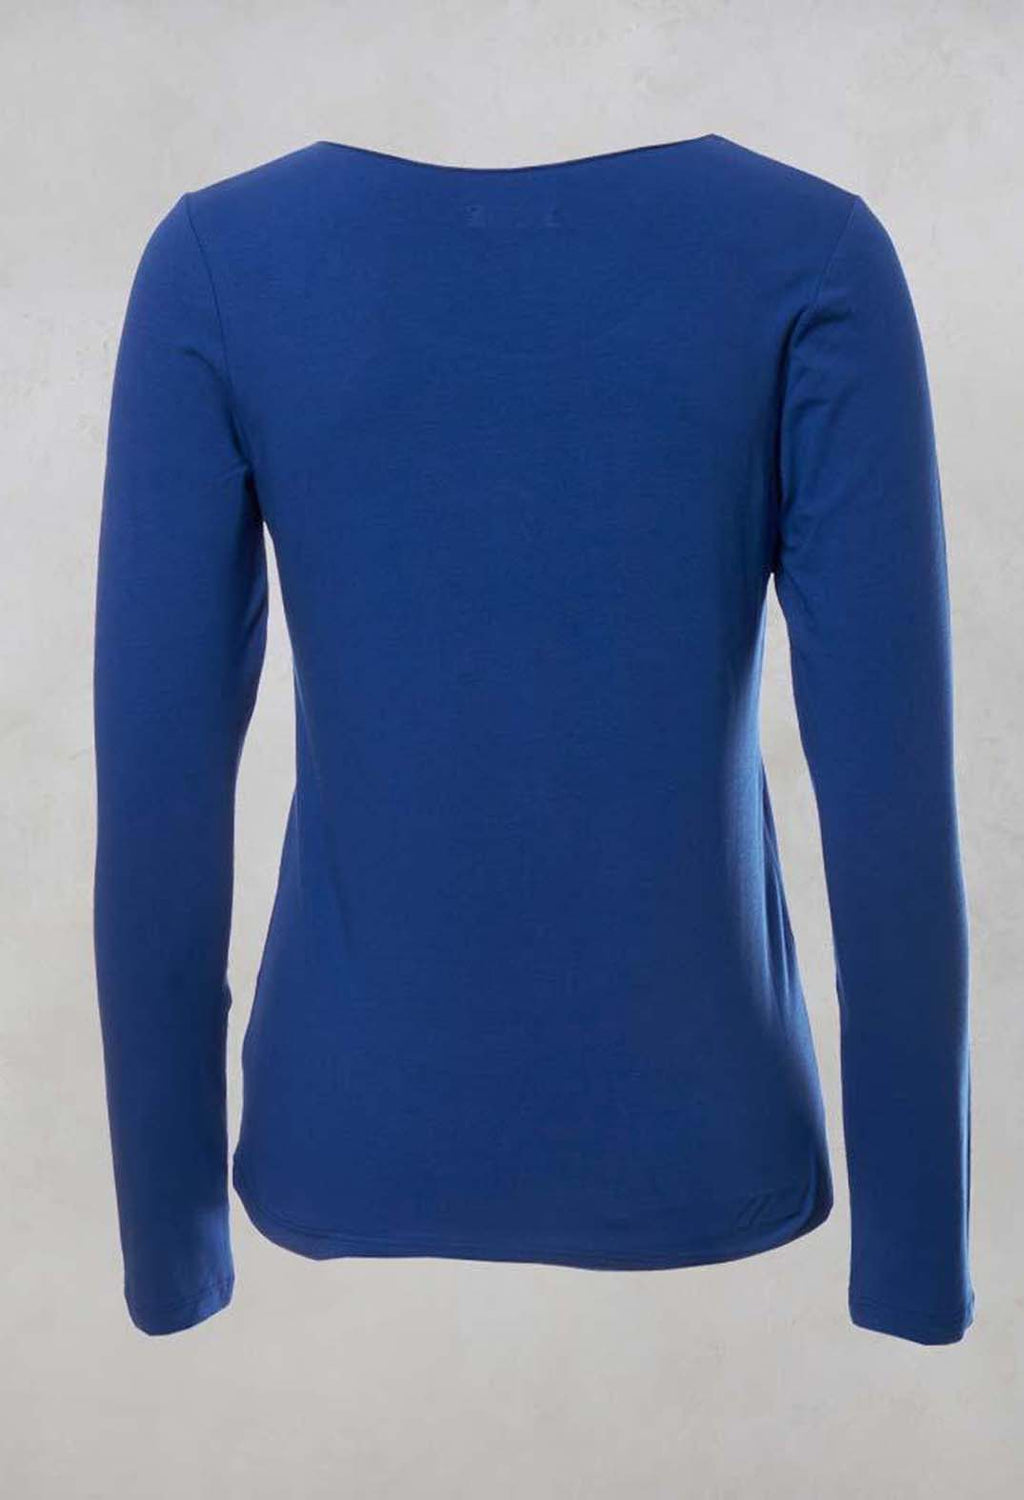 Round Neck Long Sleeved Top in Blue